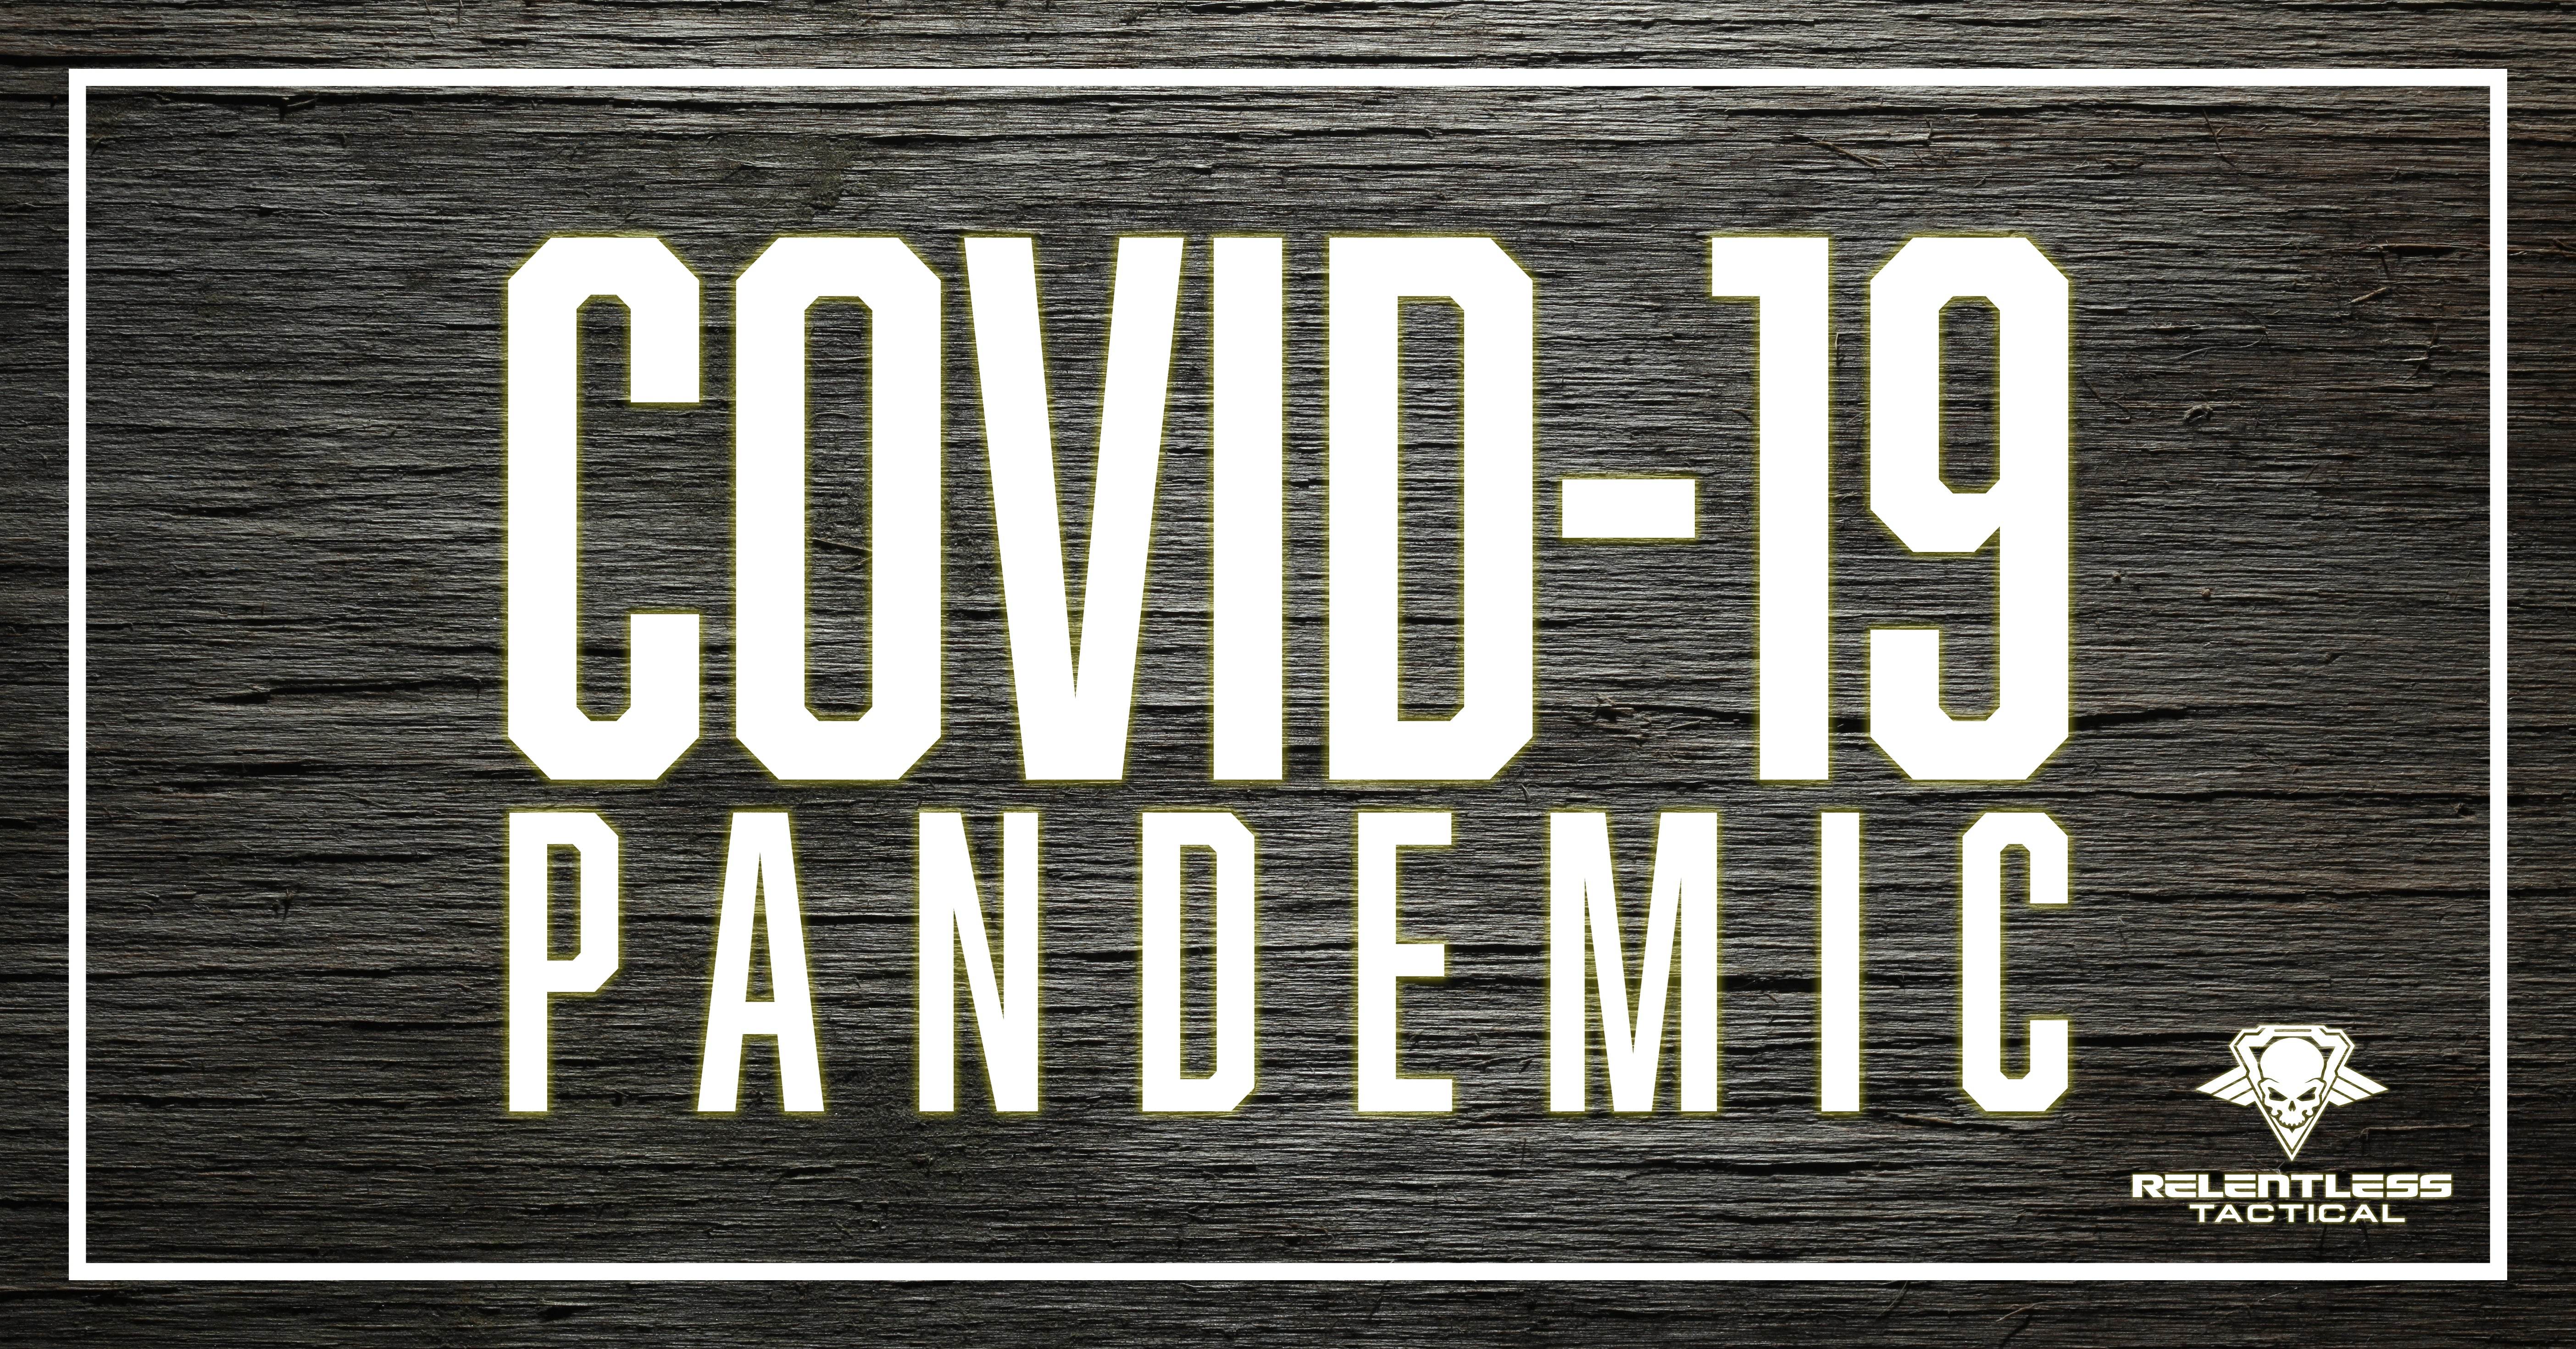 Our Response the the COVID-19 Pandemic